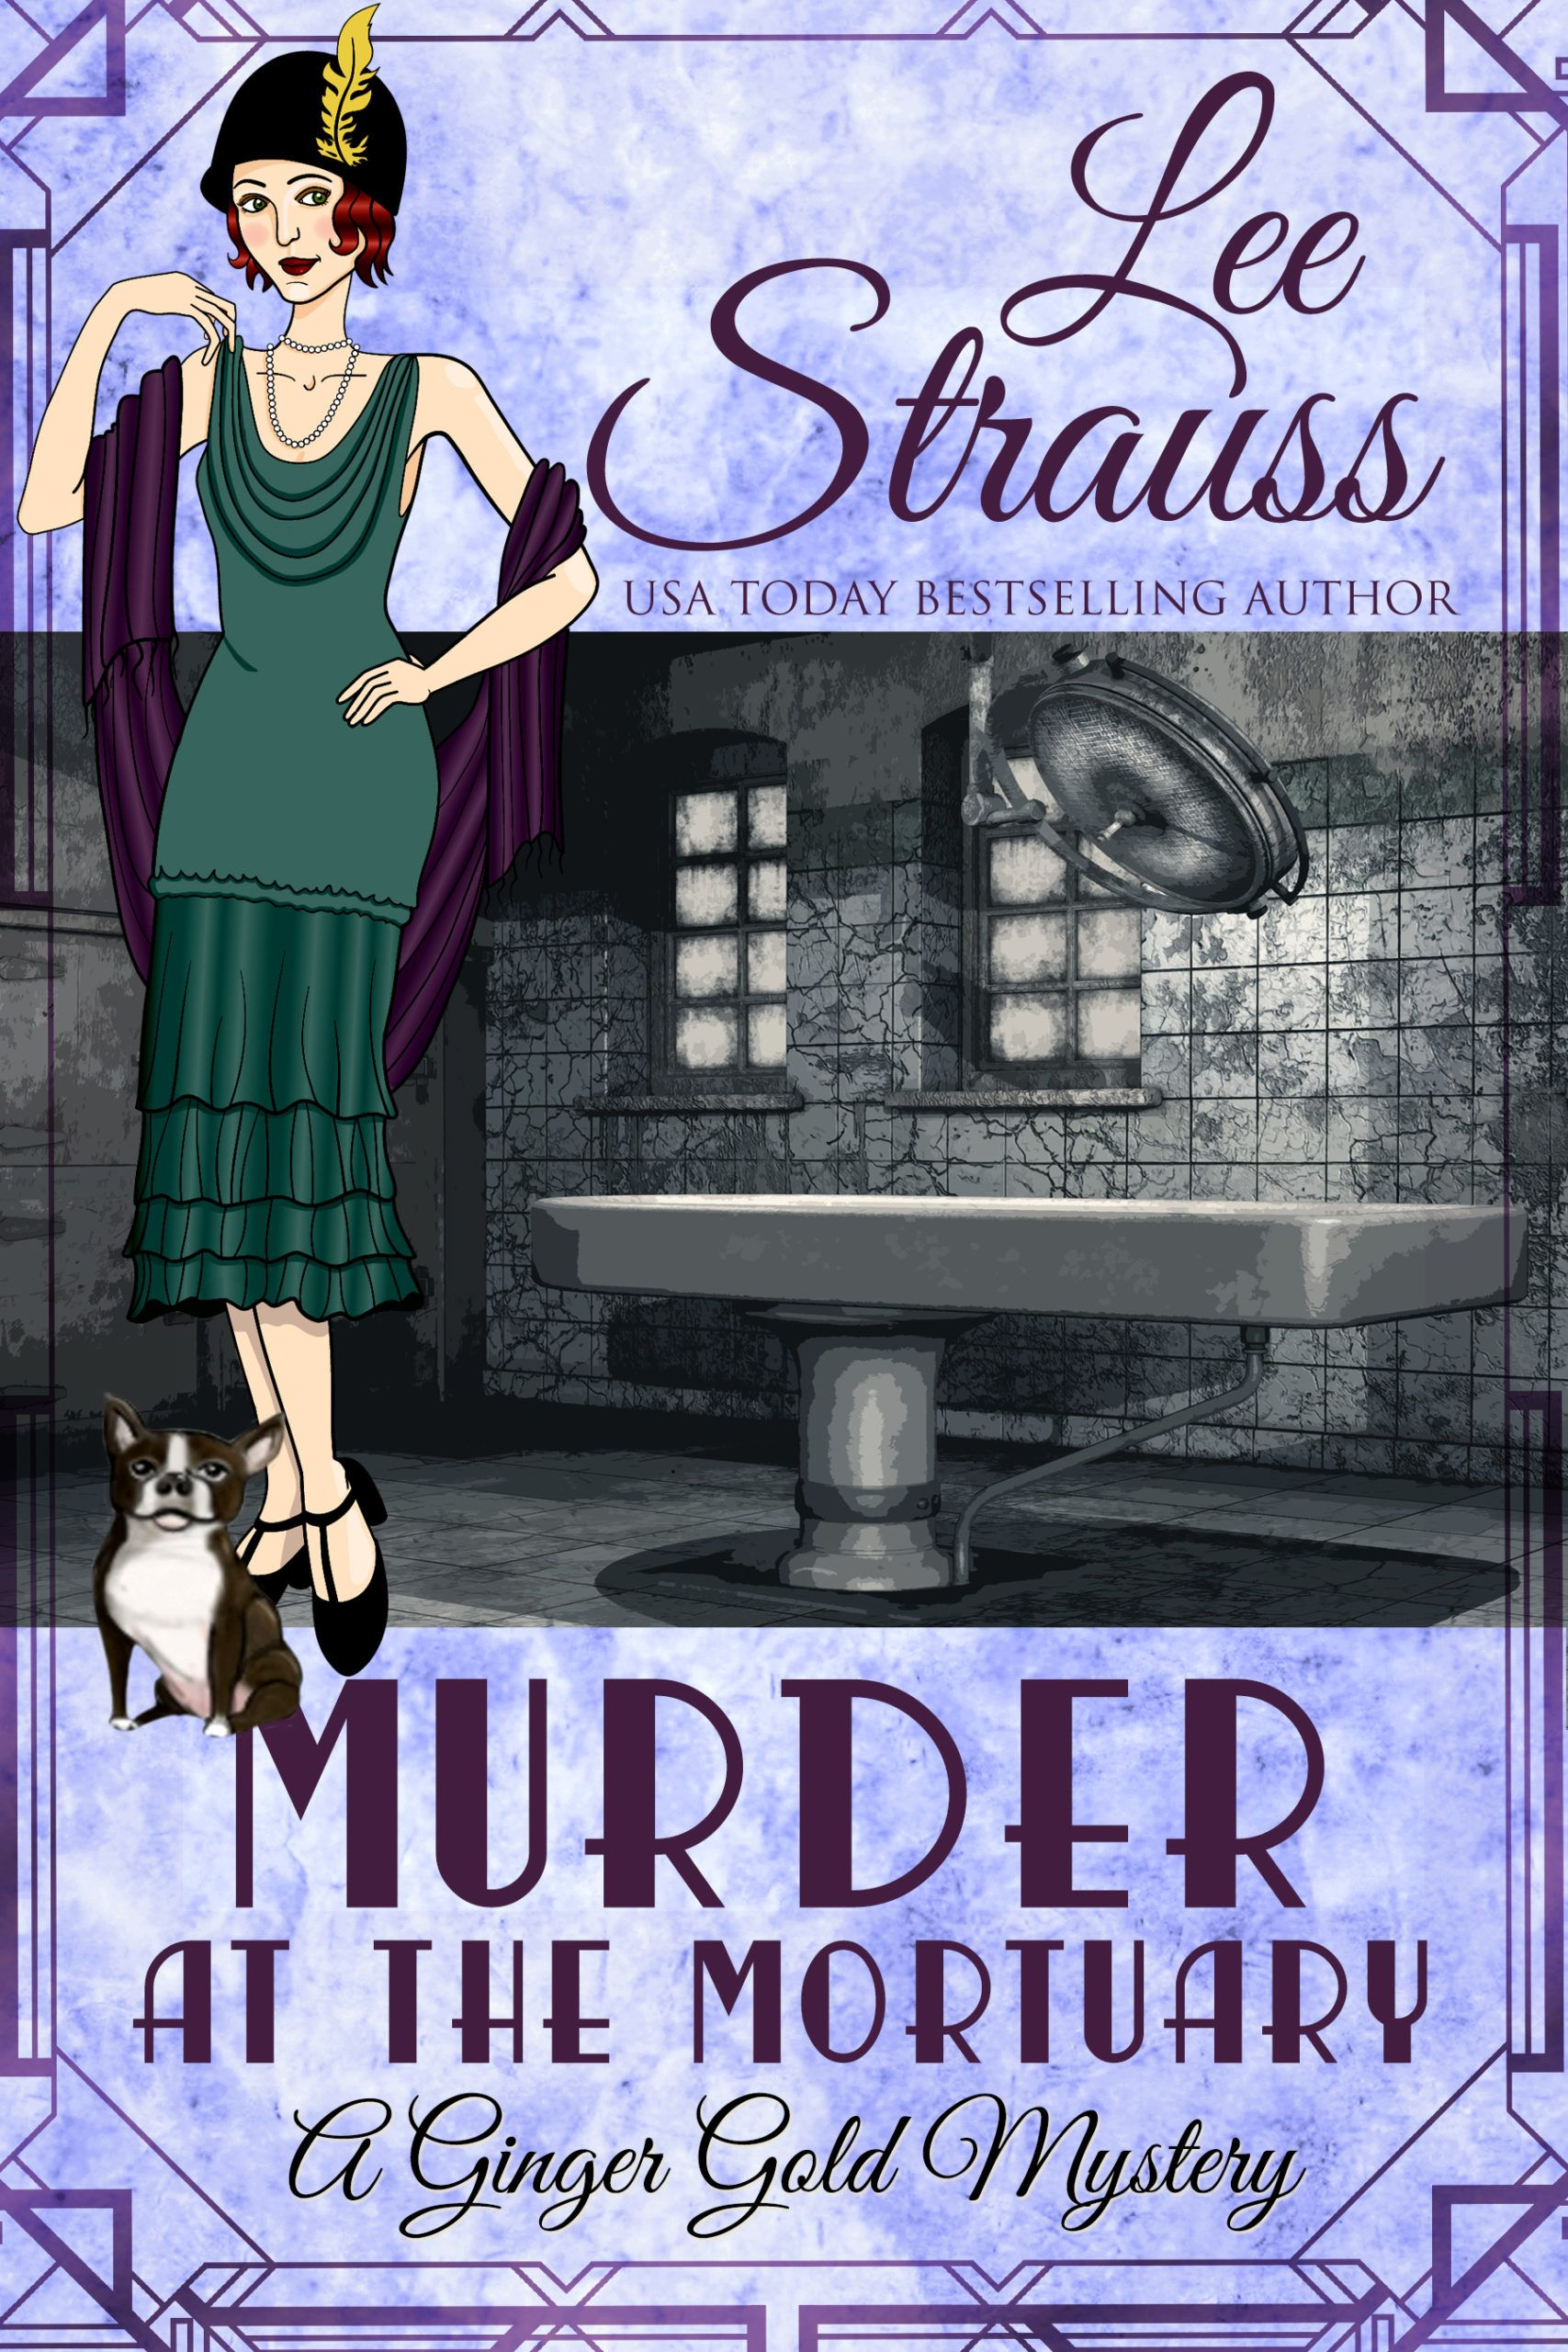 1920s Ginger Gold Mysteries, historical fiction